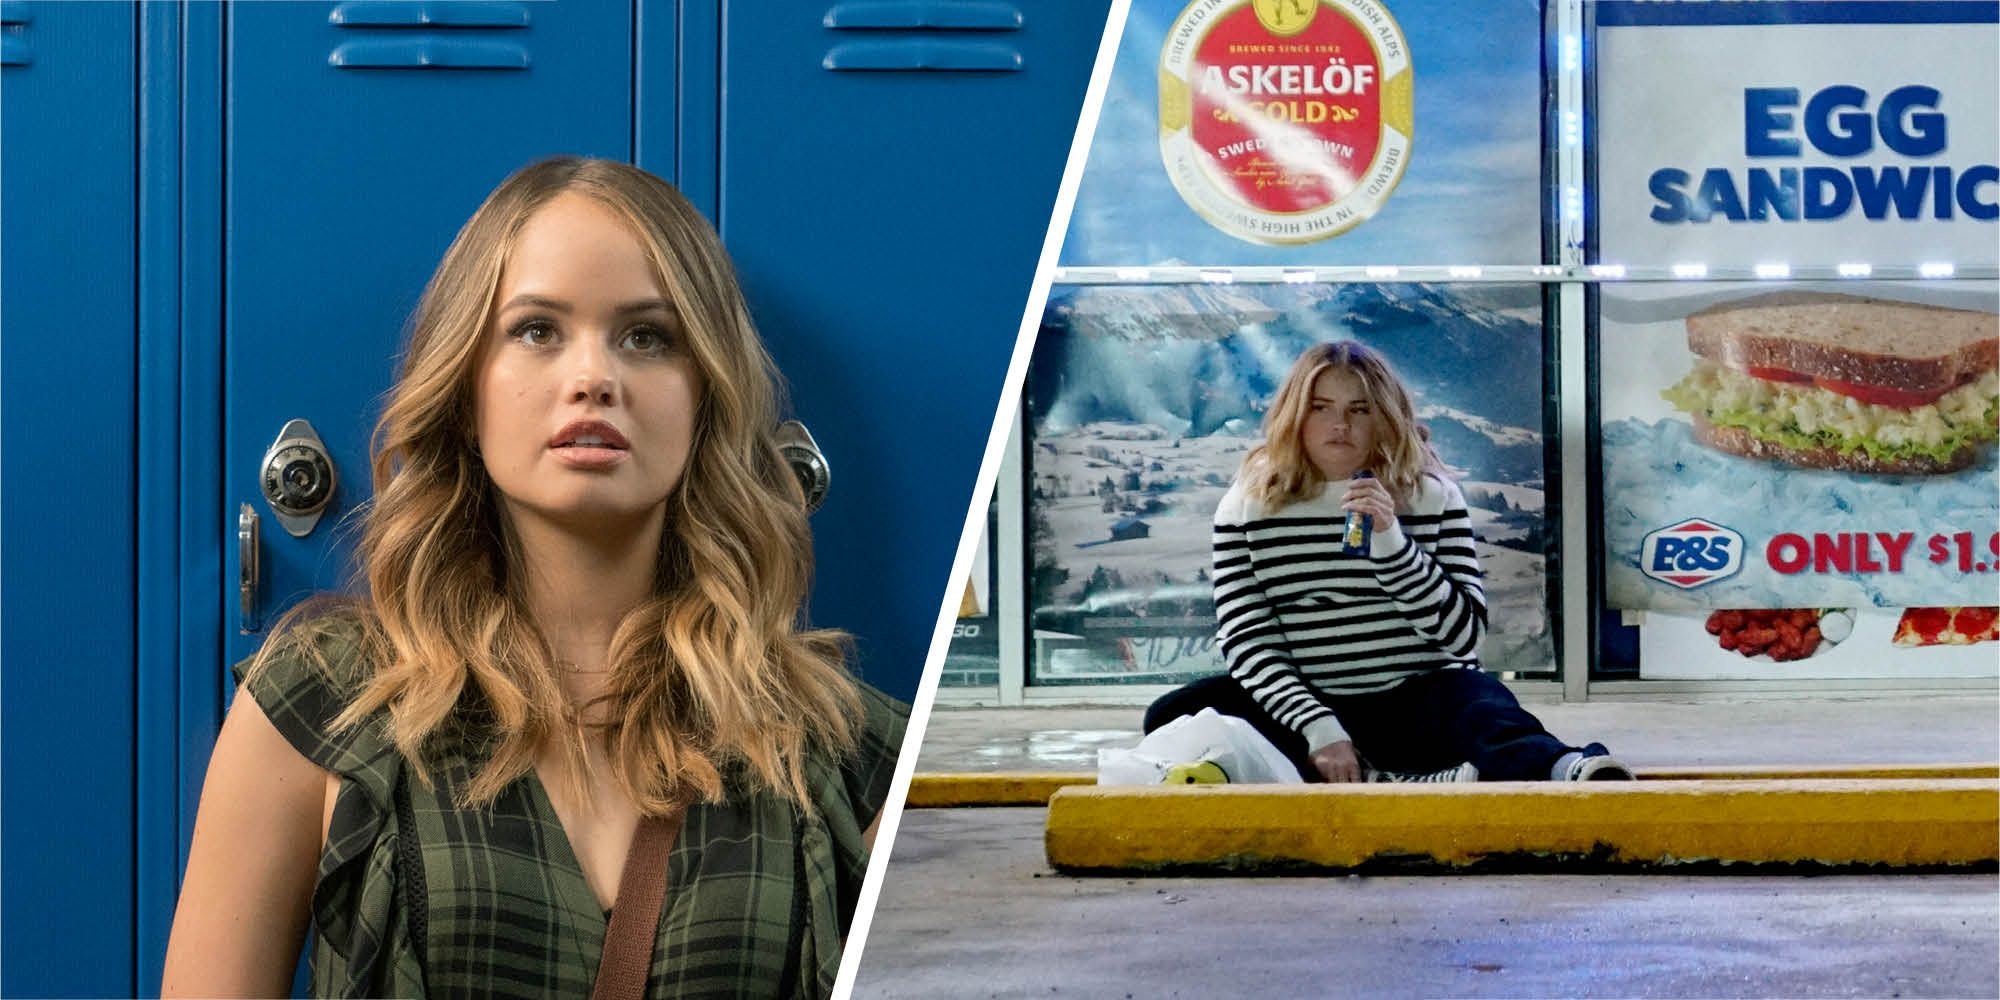 More than 100,000 people have signed a petition asking Netflix to scrap  'toxic' show 'Insatiable'